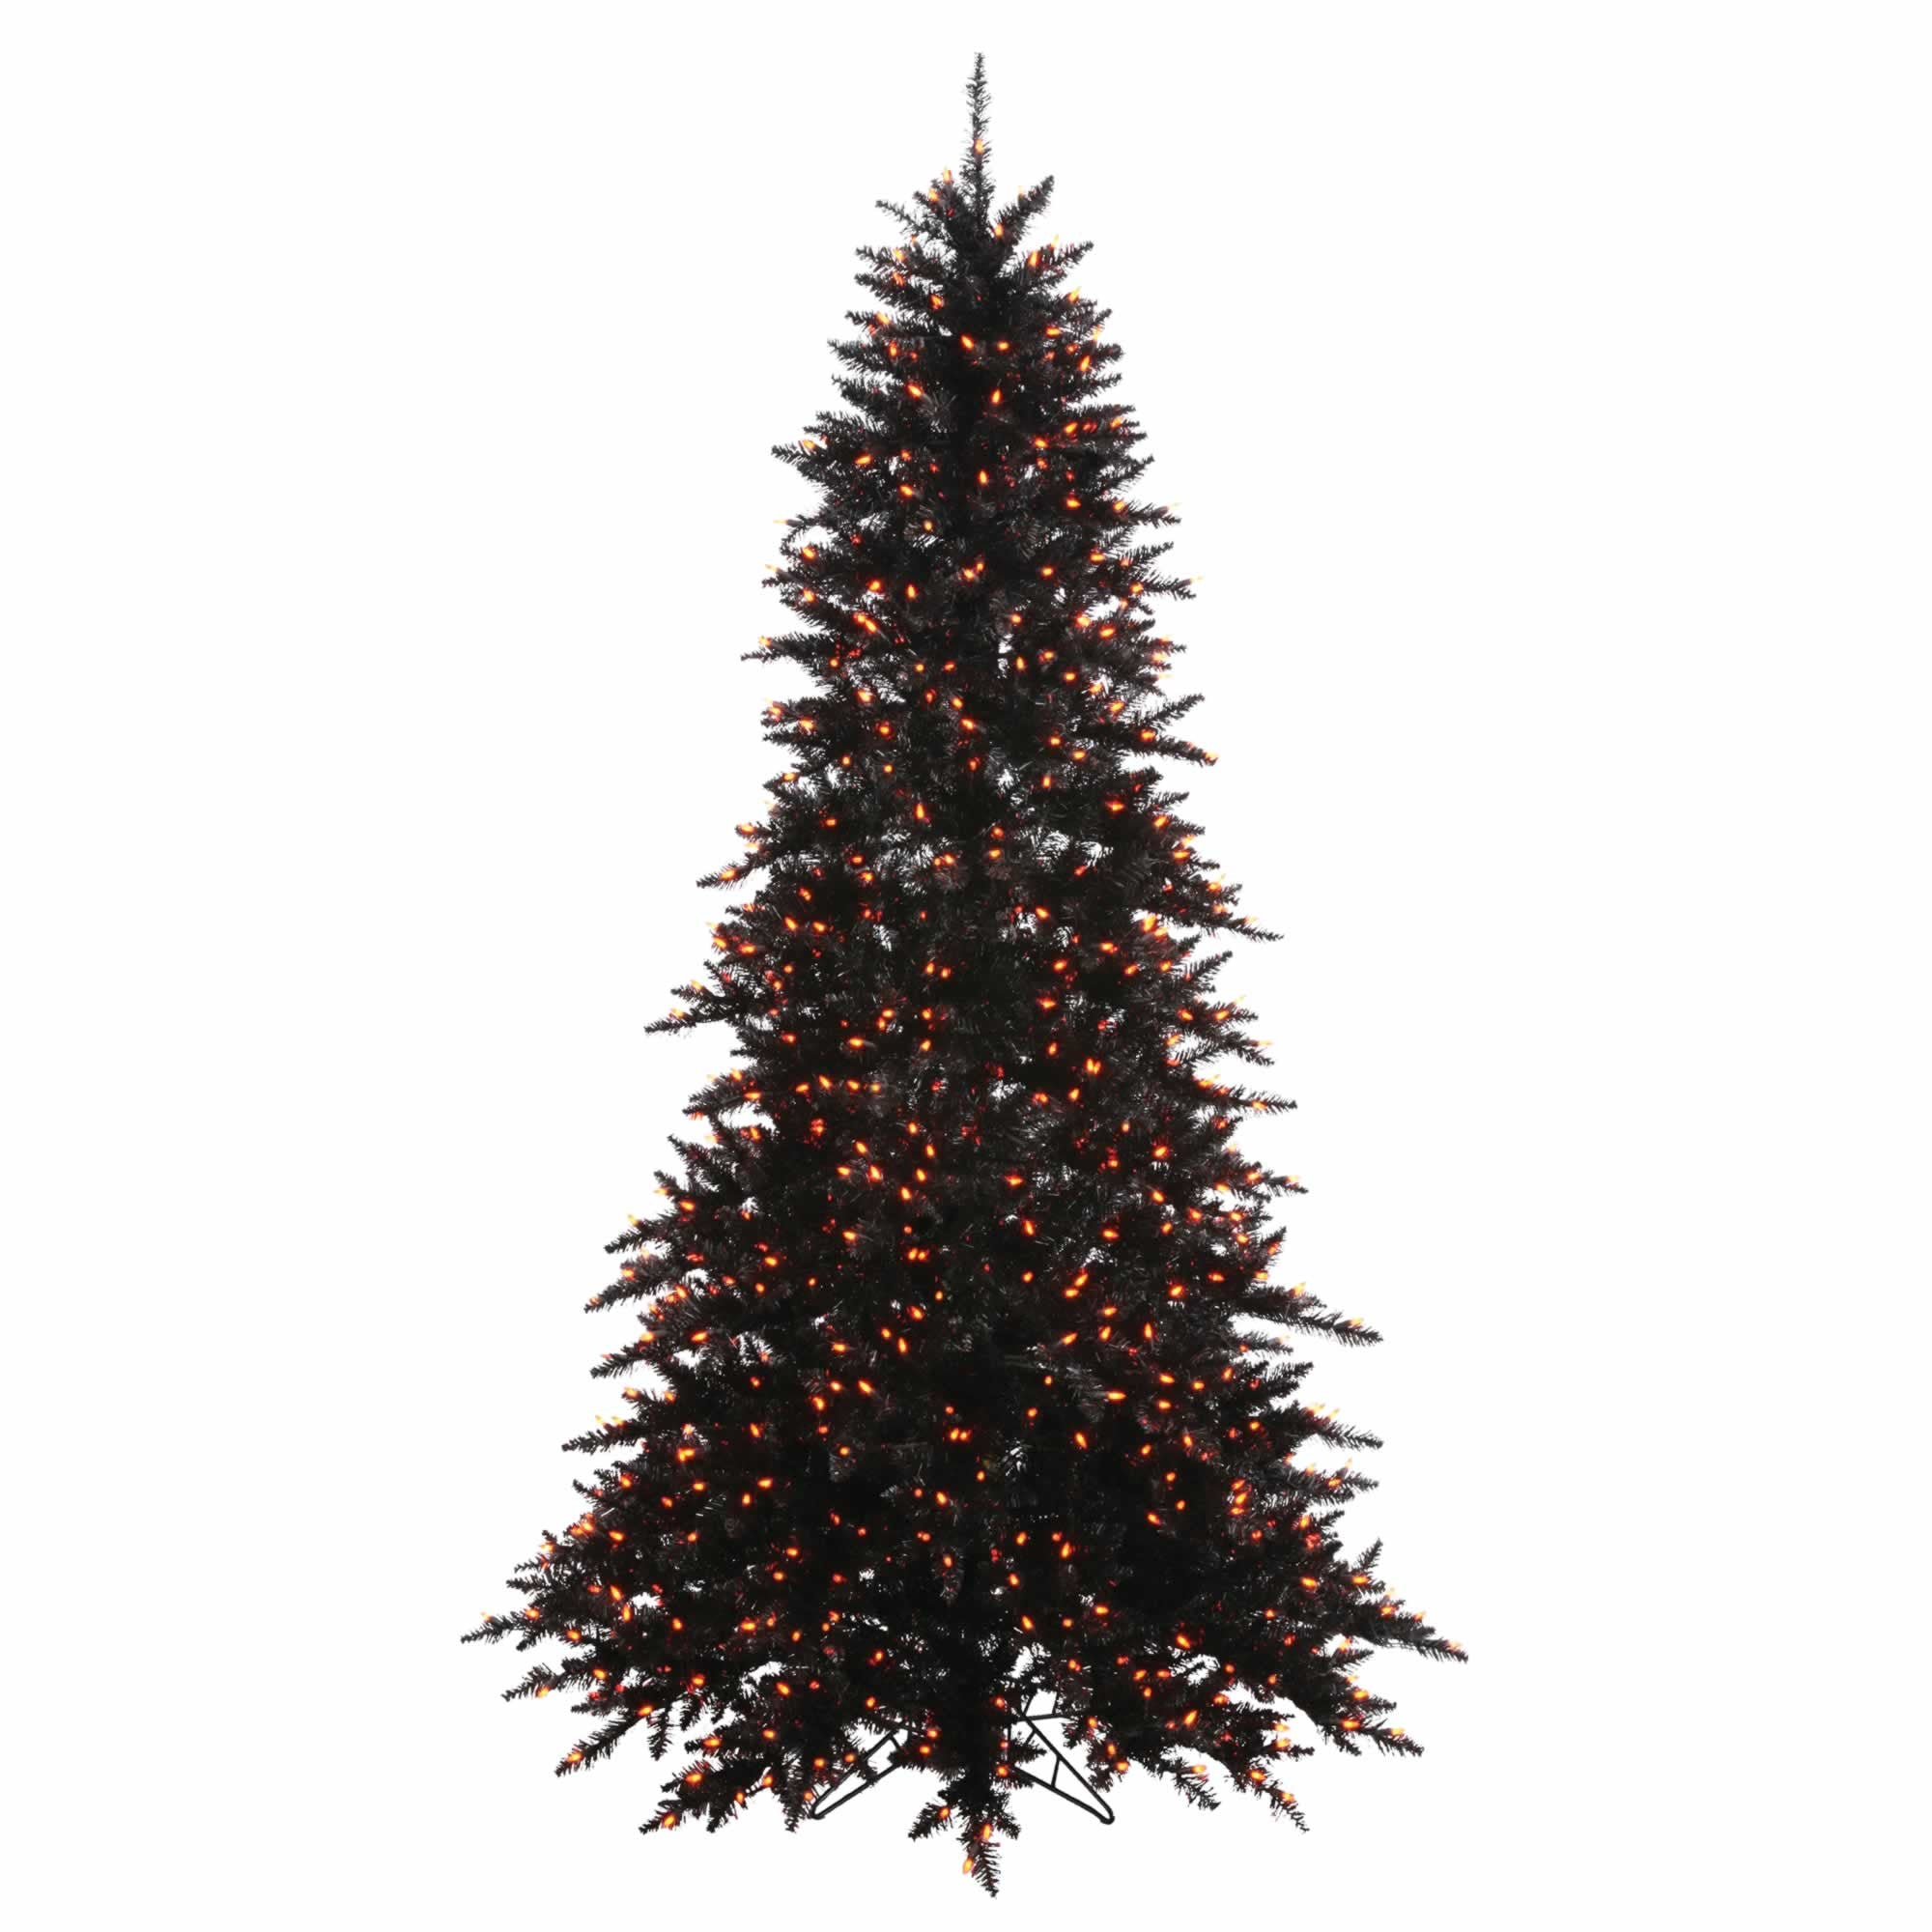 Where To Buy A Nice Artificial Christmas Tree: Black Christmas Trees - Where To Buy Online